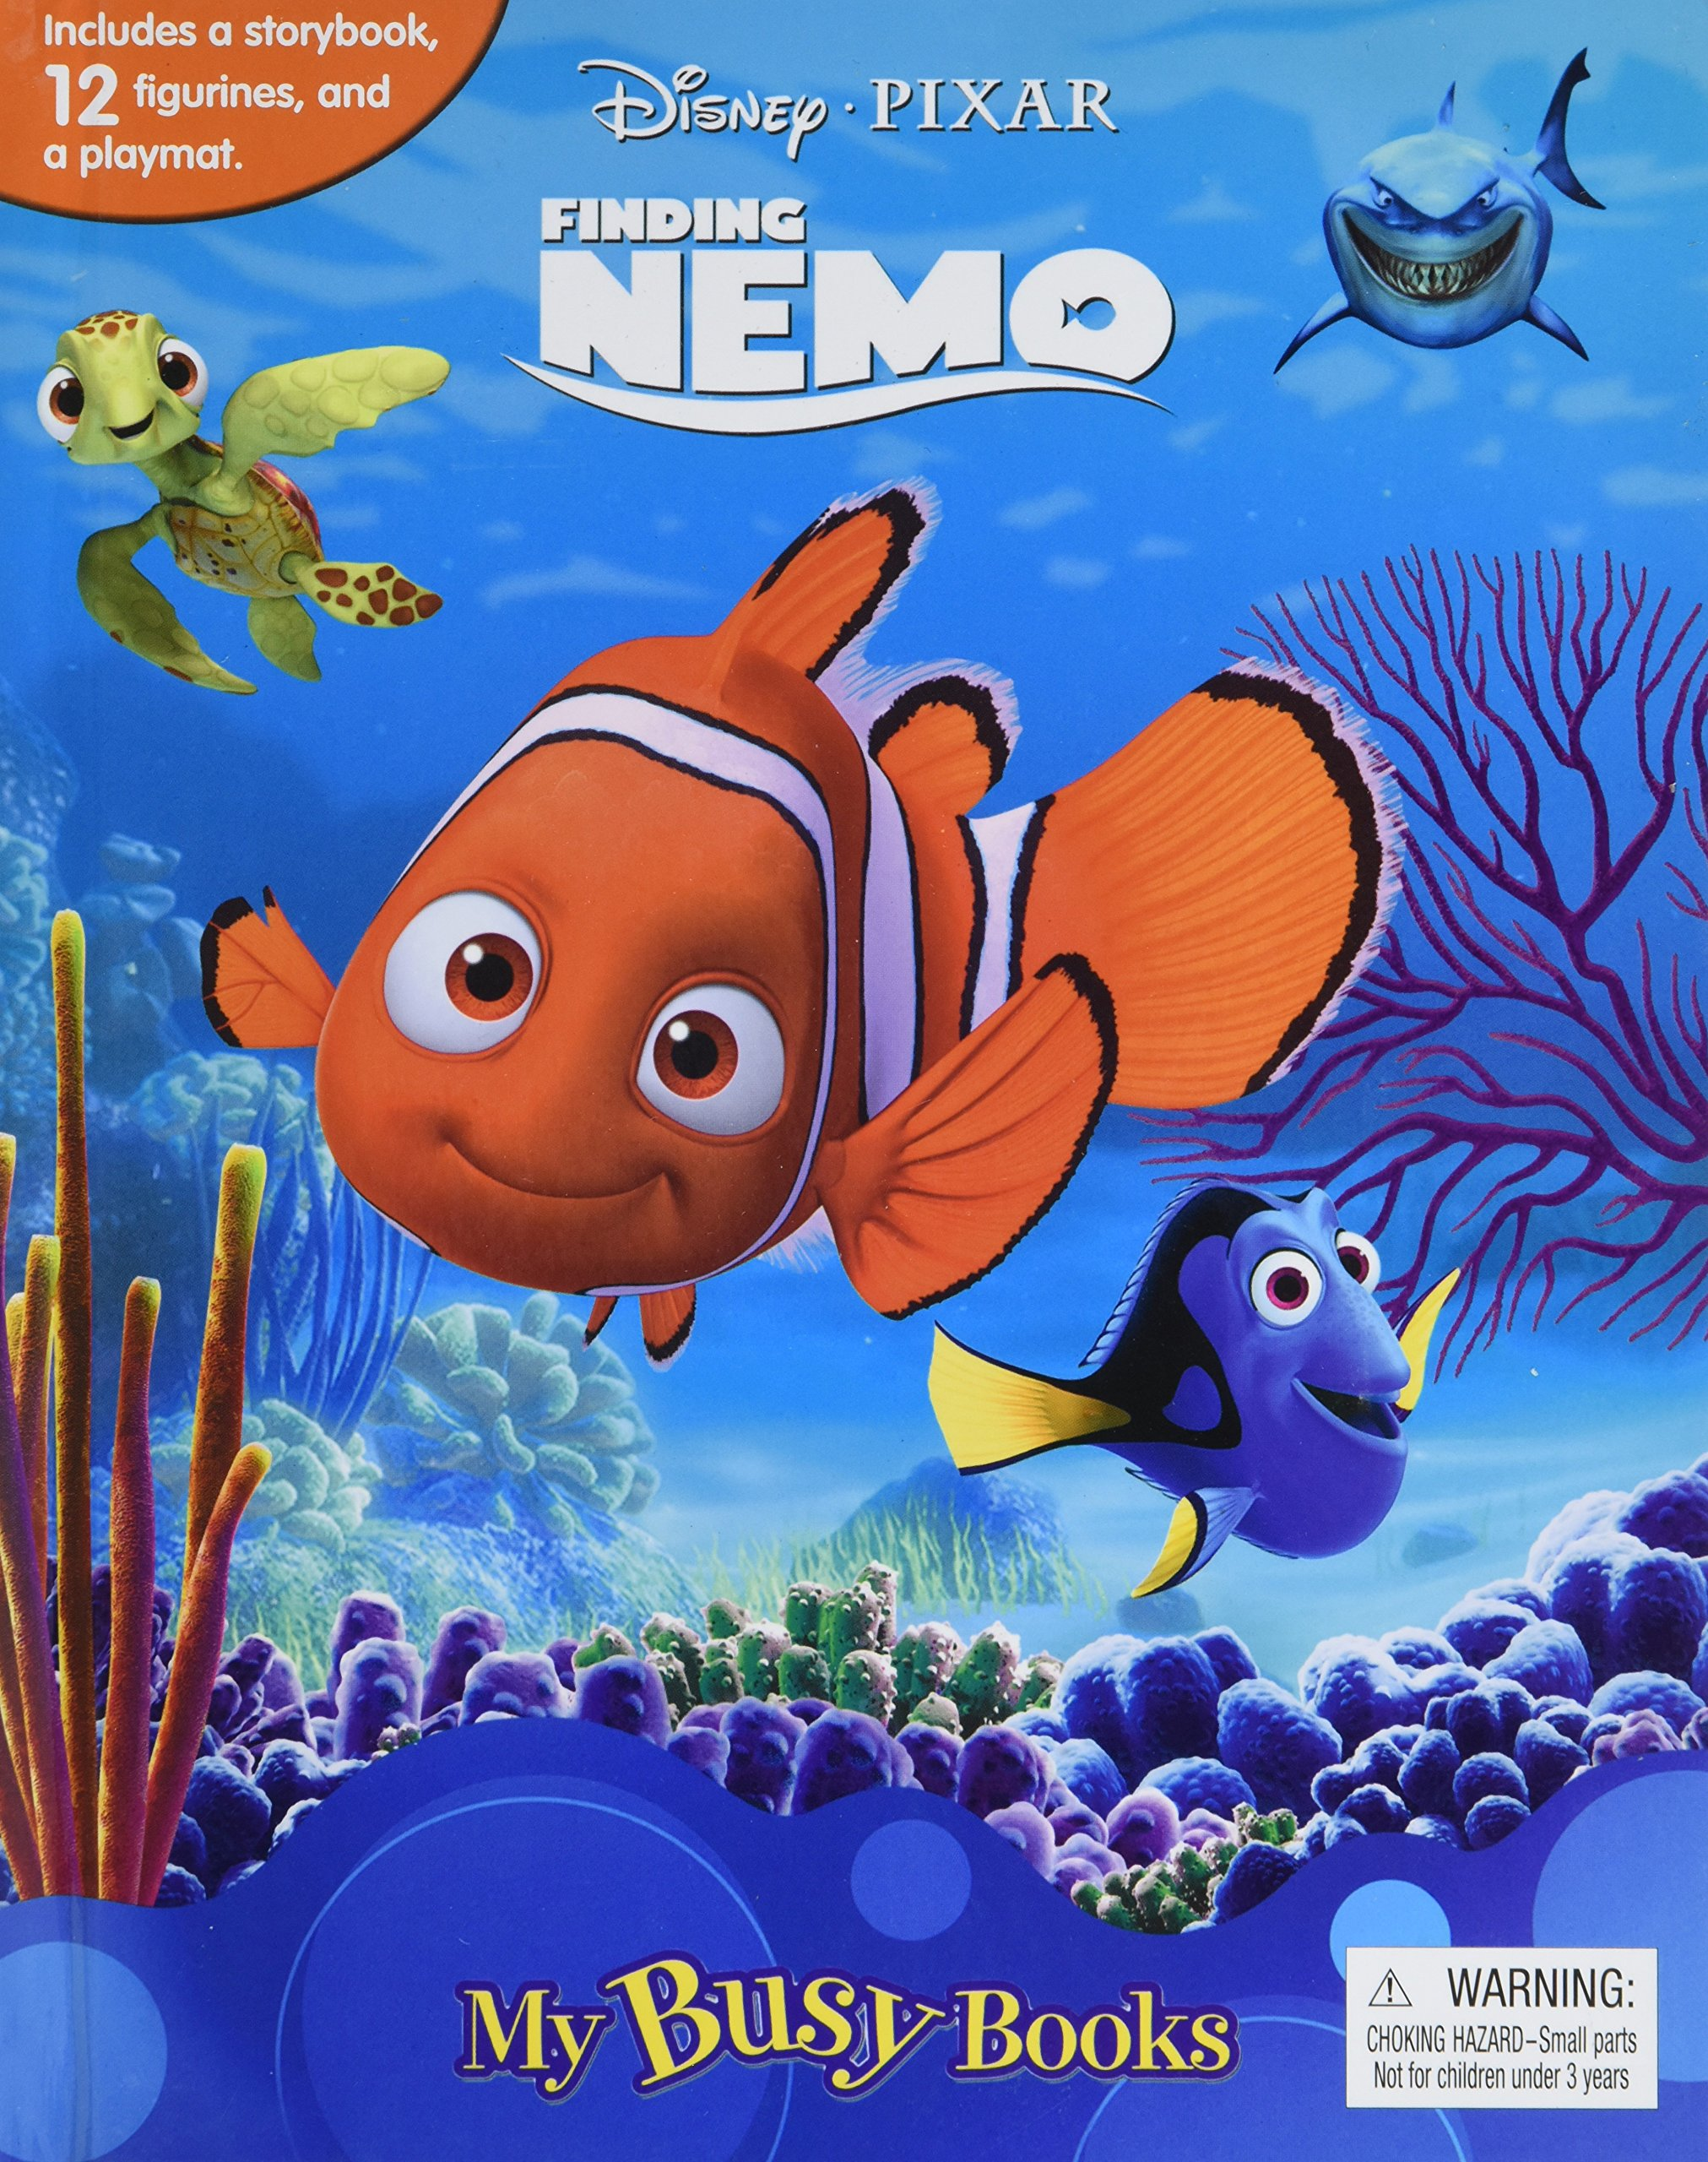 70c41157153 Disney/Pixar Finding Nemo My Busy Book: Phidal Publishing Inc ...